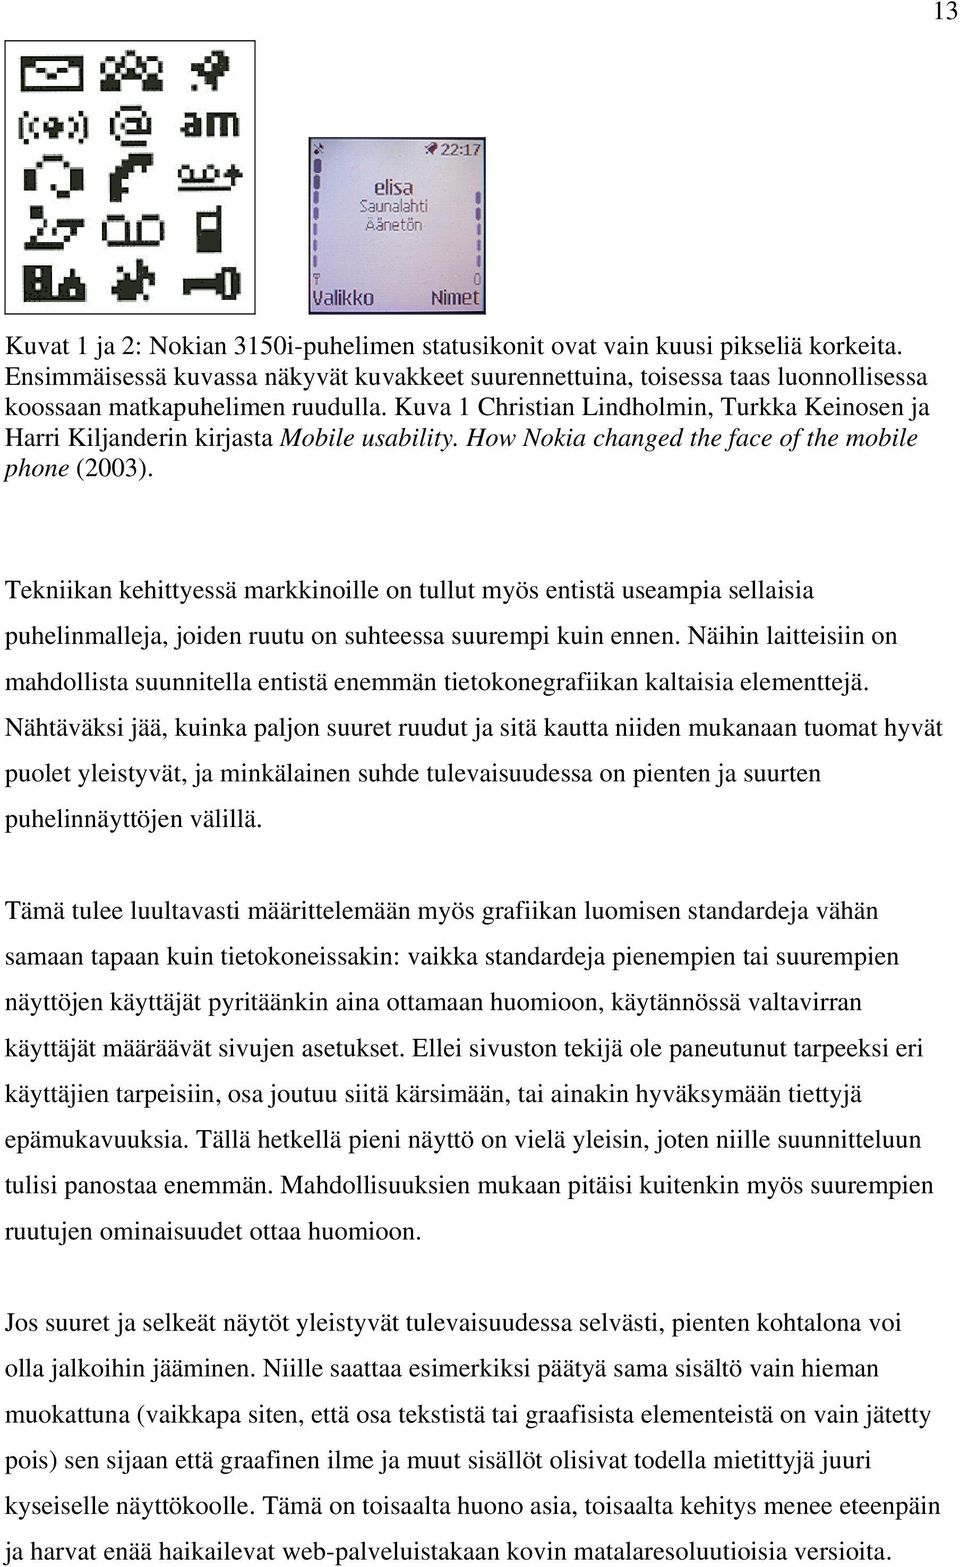 Kuva 1 Christian Lindholmin, Turkka Keinosen ja Harri Kiljanderin kirjasta Mobile usability. How Nokia changed the face of the mobile phone (2003).